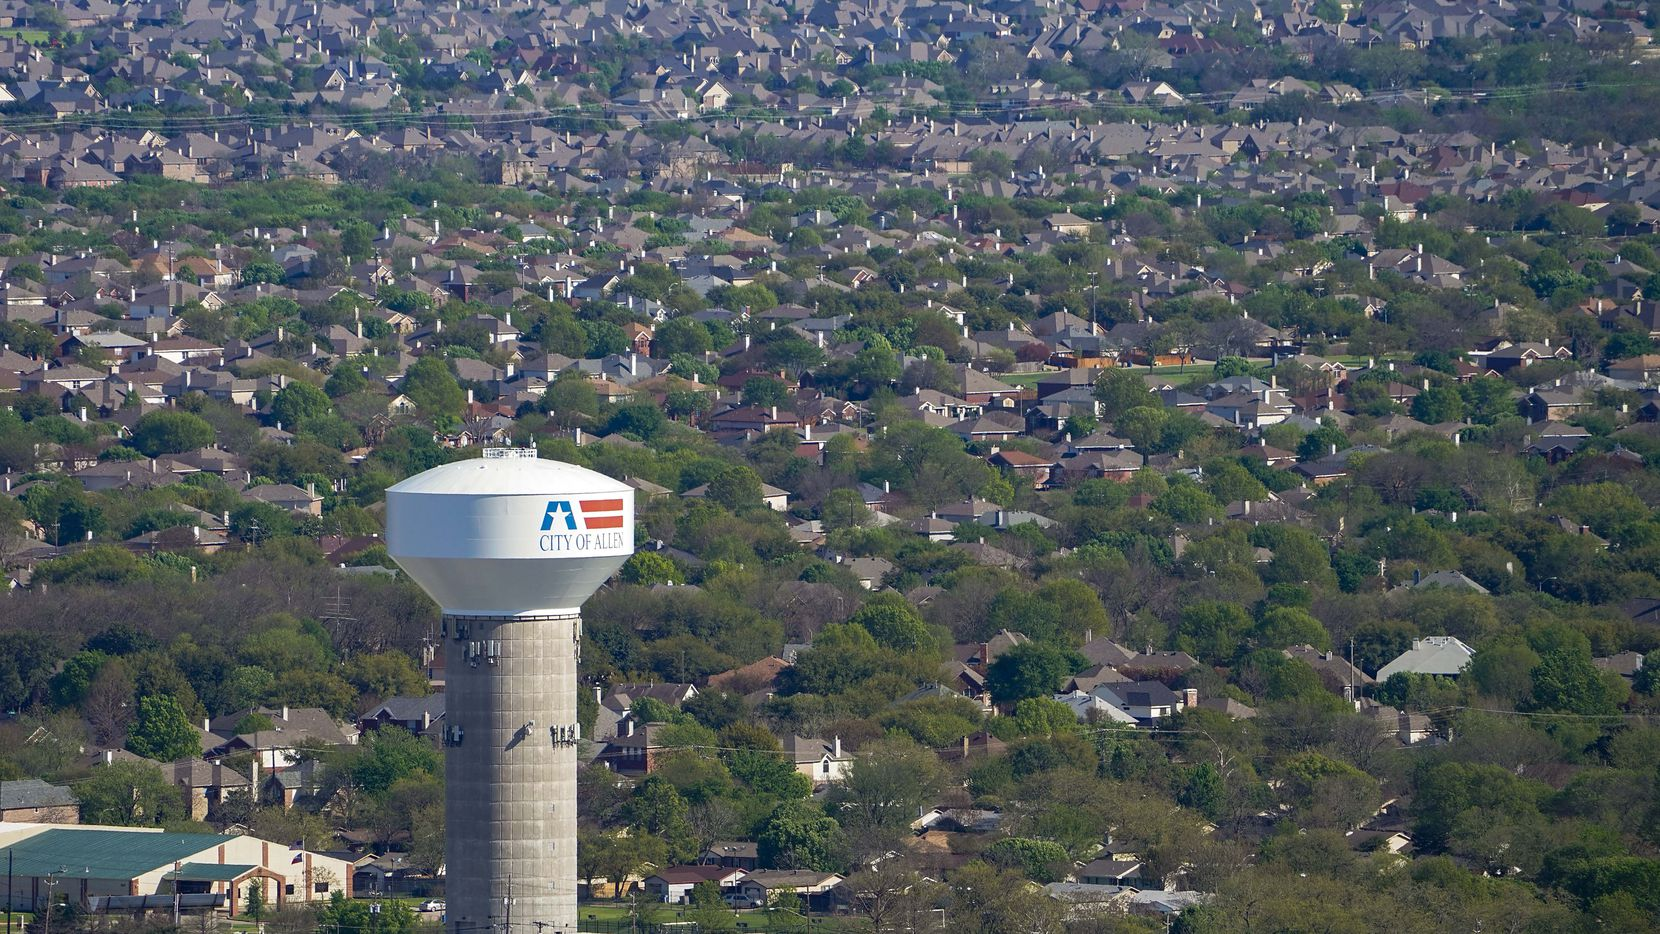 Aerial view of water tower and residential neighborhood in Allen, Texas on Tuesday, March 24, 2020.